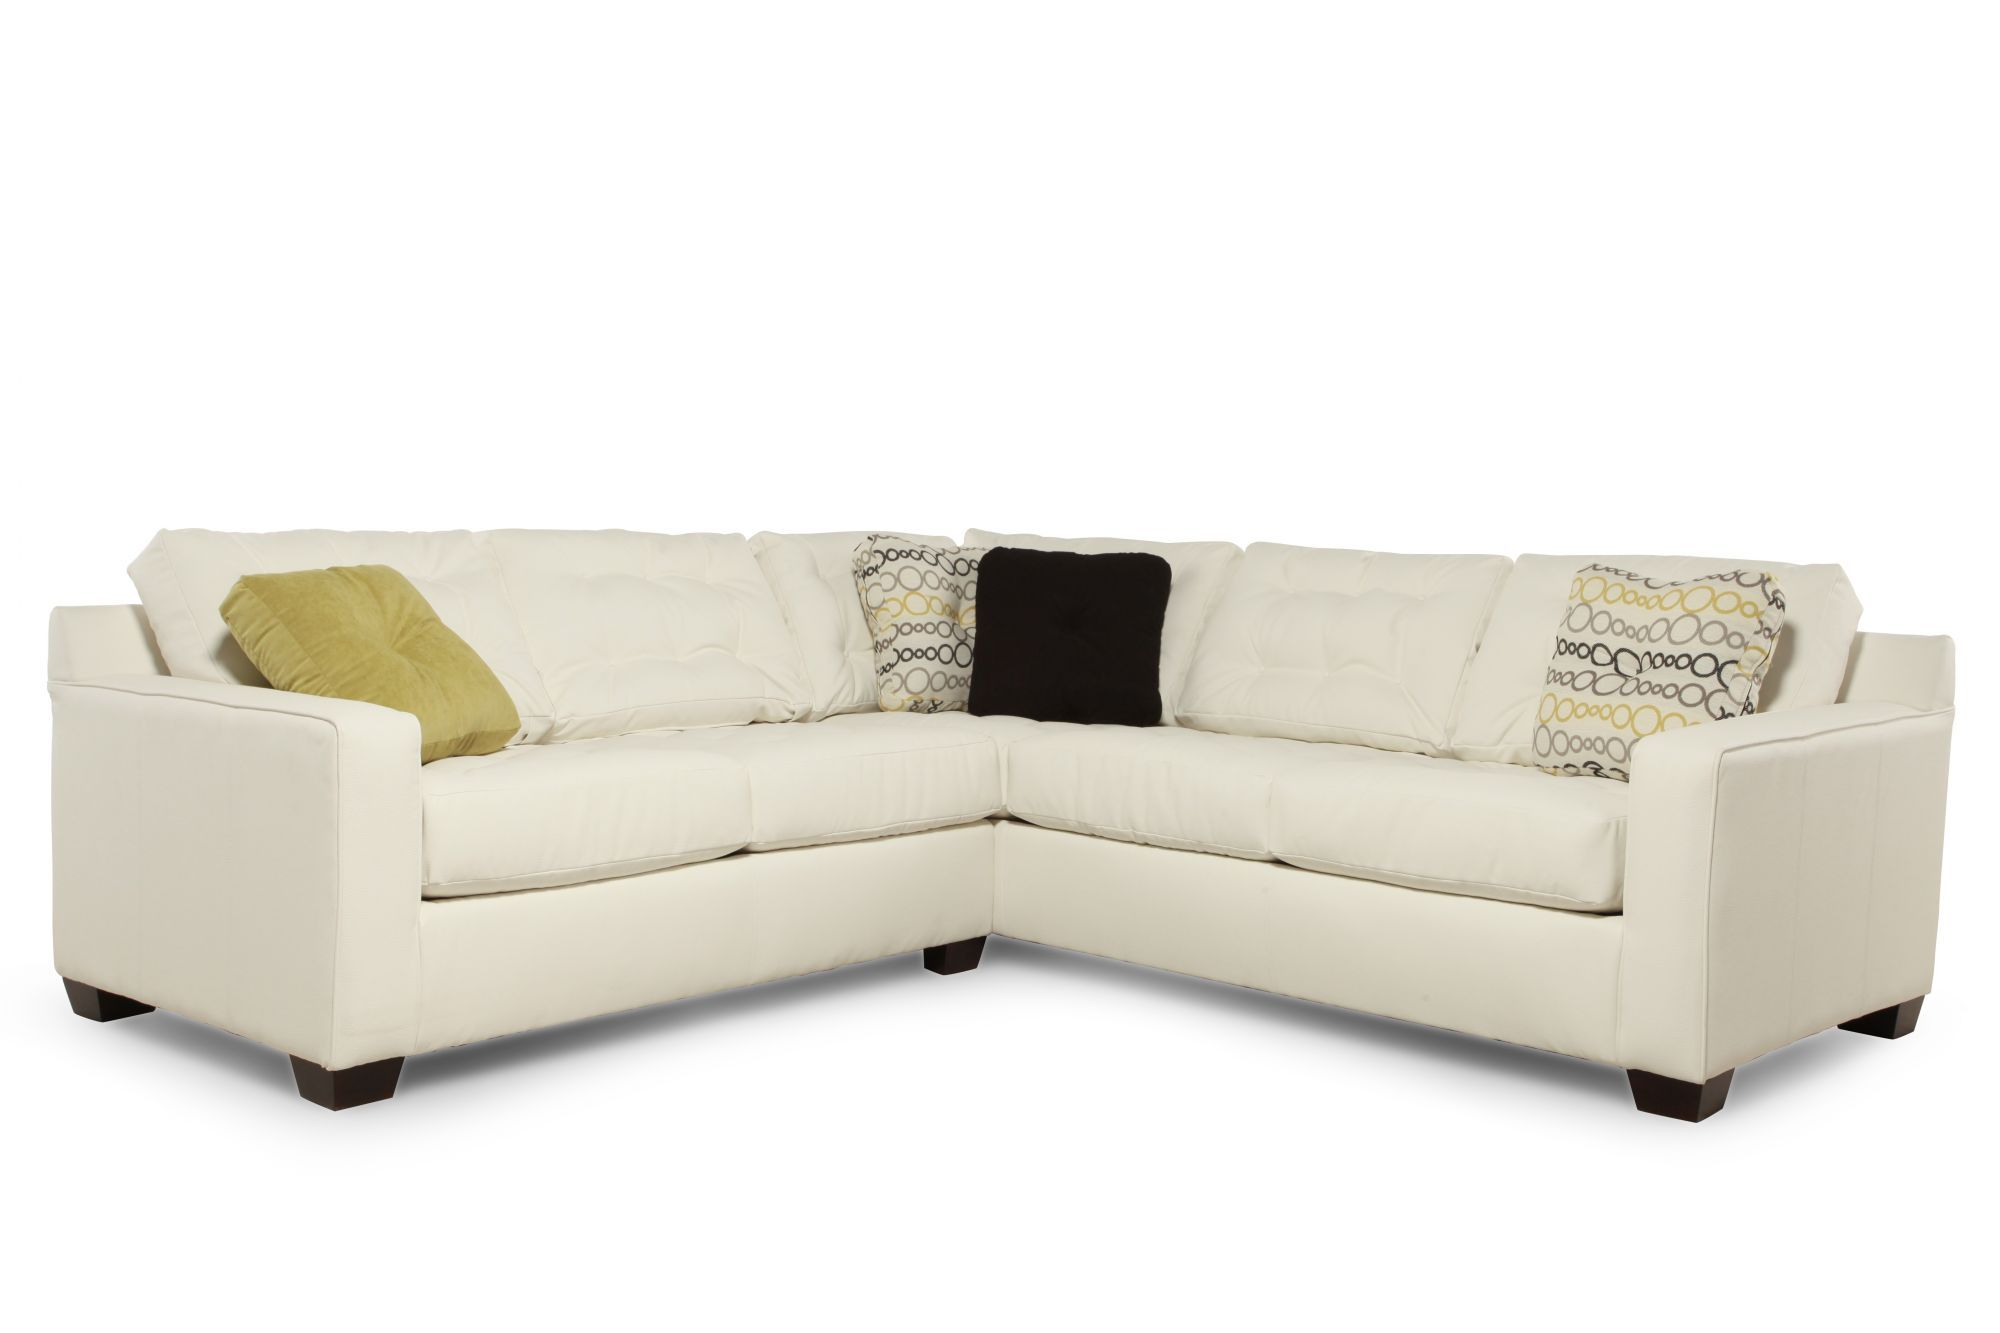 Broyhill Soho Sectional $1,579.95 #MathisBrothers | Living room ...